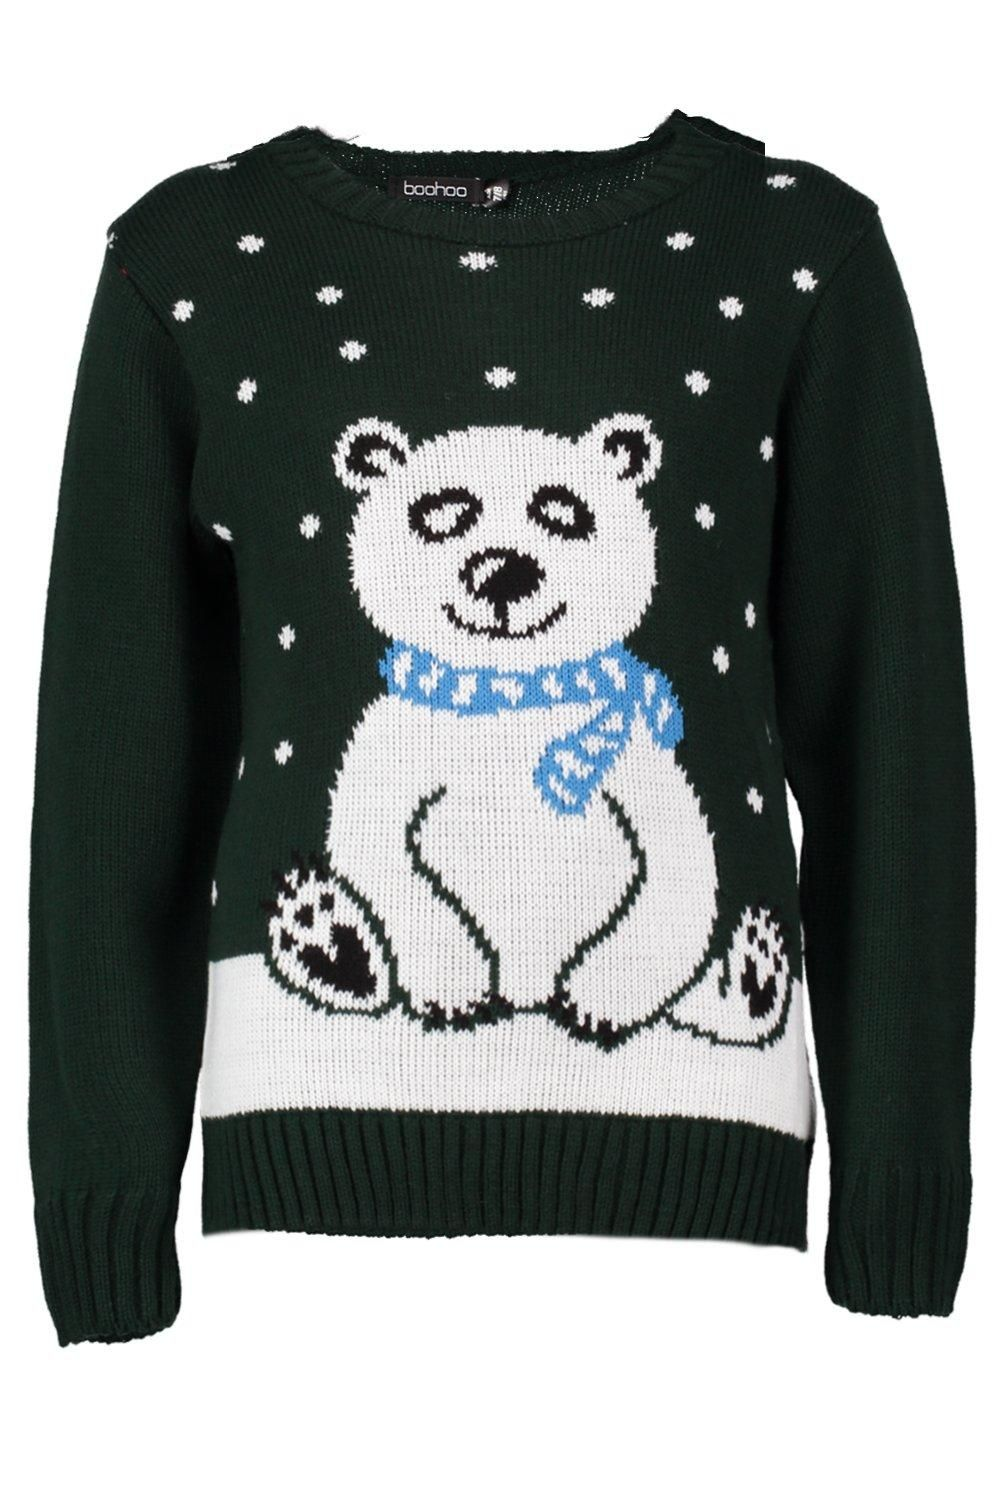 Womens christmas jumper, Christmas jumpers